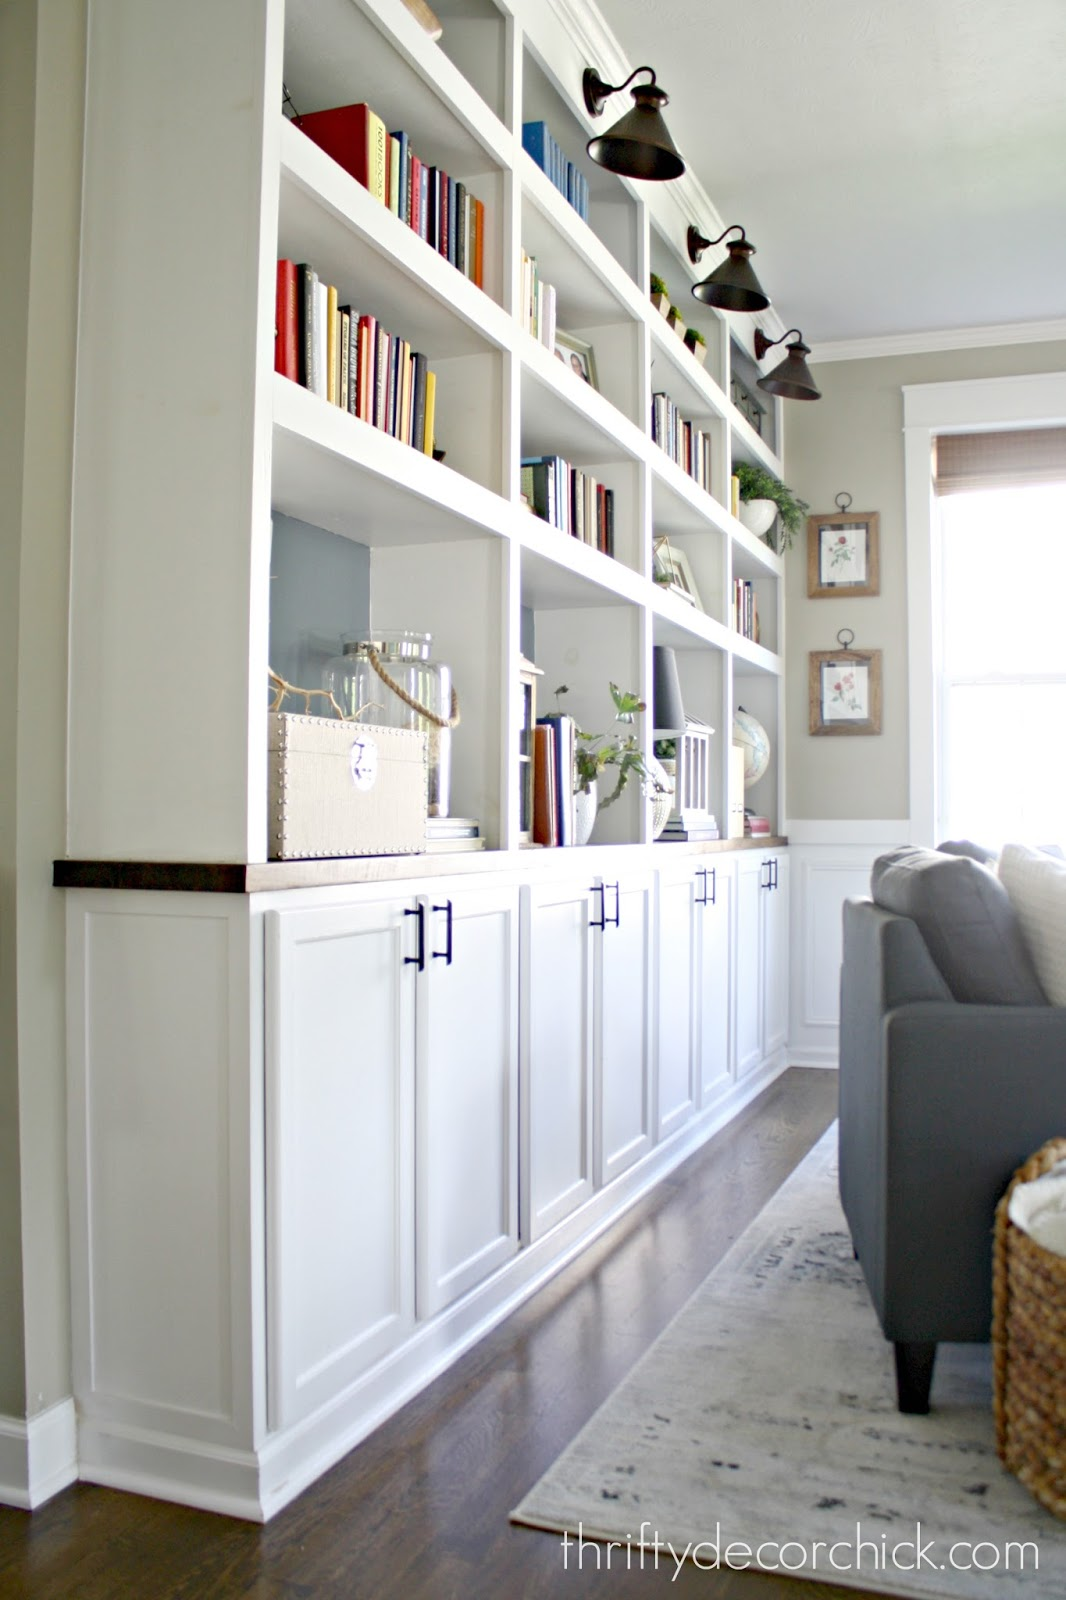 How To Create Custom Built Ins With Kitchen Cabinets From Thrifty Decor Chick